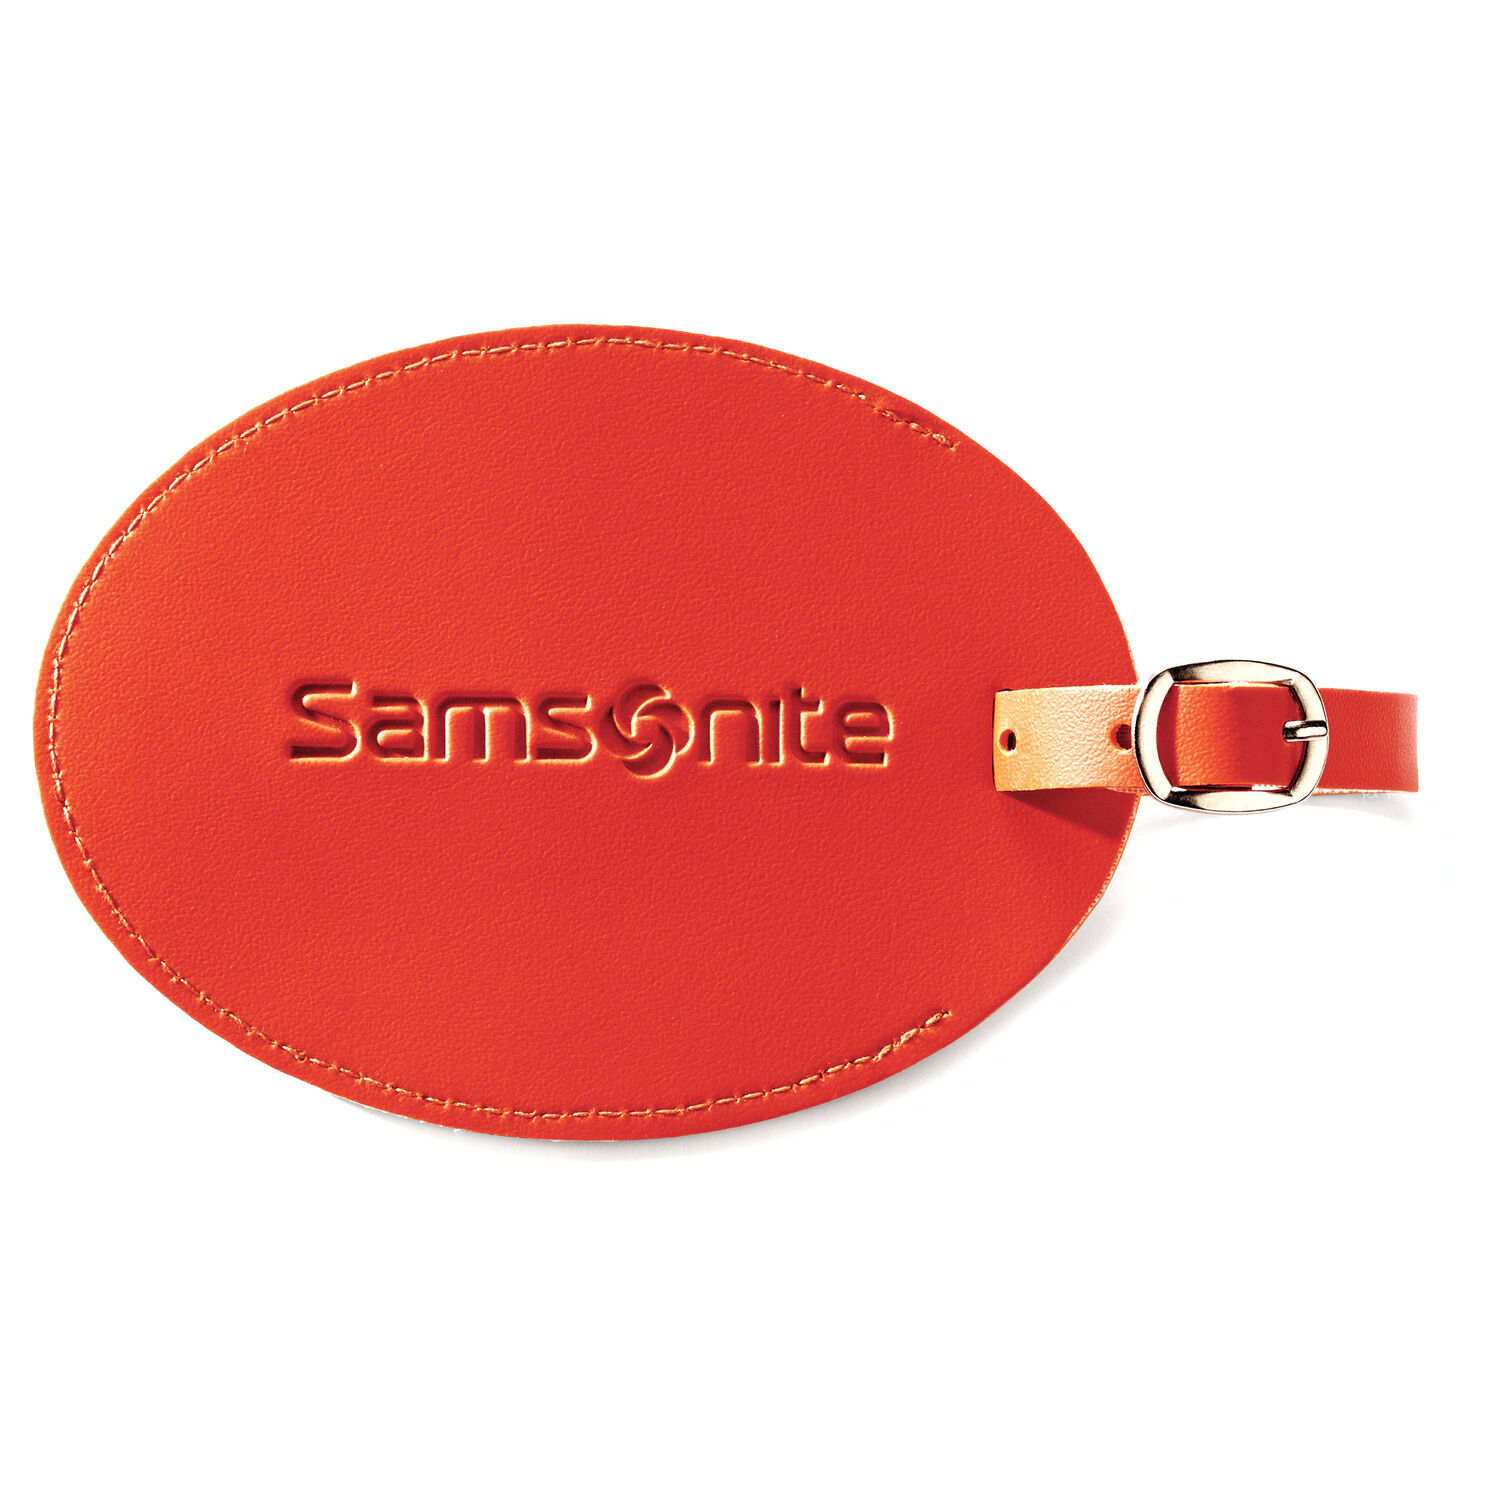 samsonite large vinyl id tag. Black Bedroom Furniture Sets. Home Design Ideas